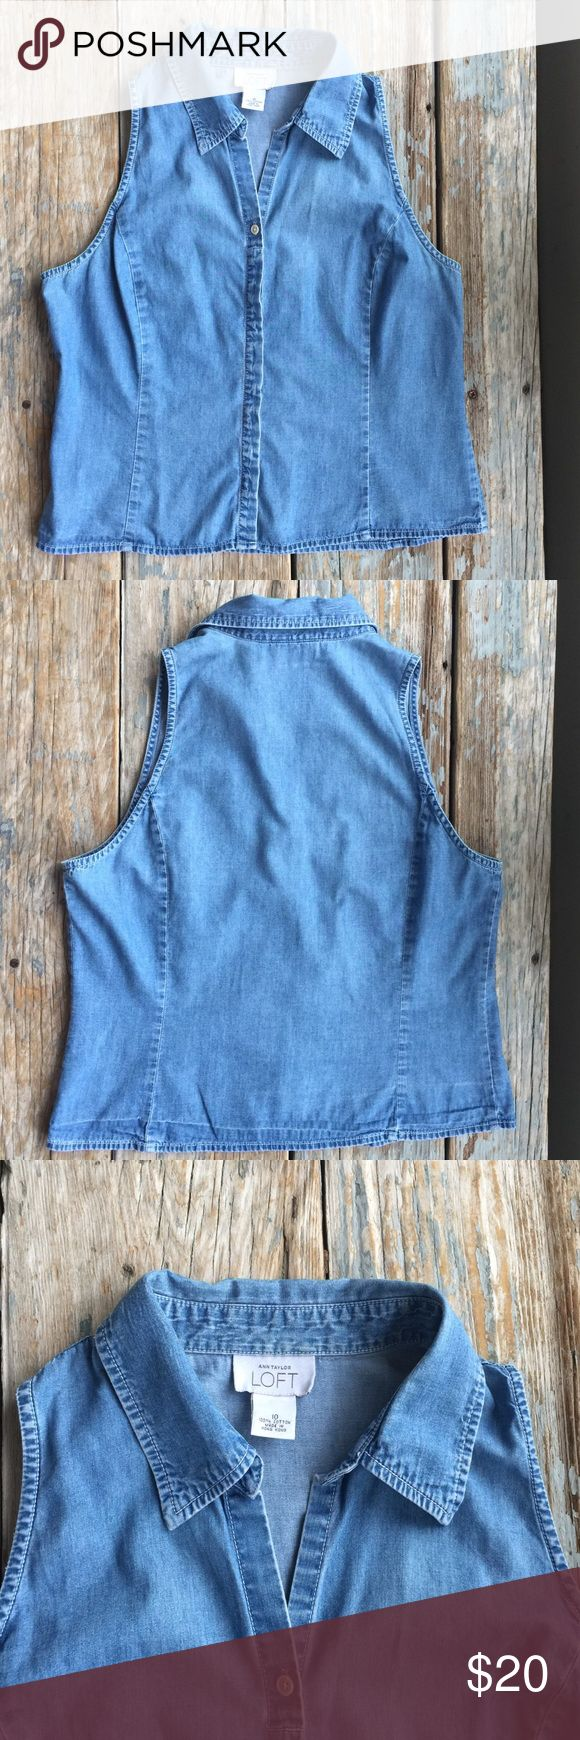 LOFT Sleeveless Denim Shirt EUC. Classic style in a lightweight Denim. So cute with white cropped Denim jeans and a neckerchief. LOFT Tops Button Down Shirts